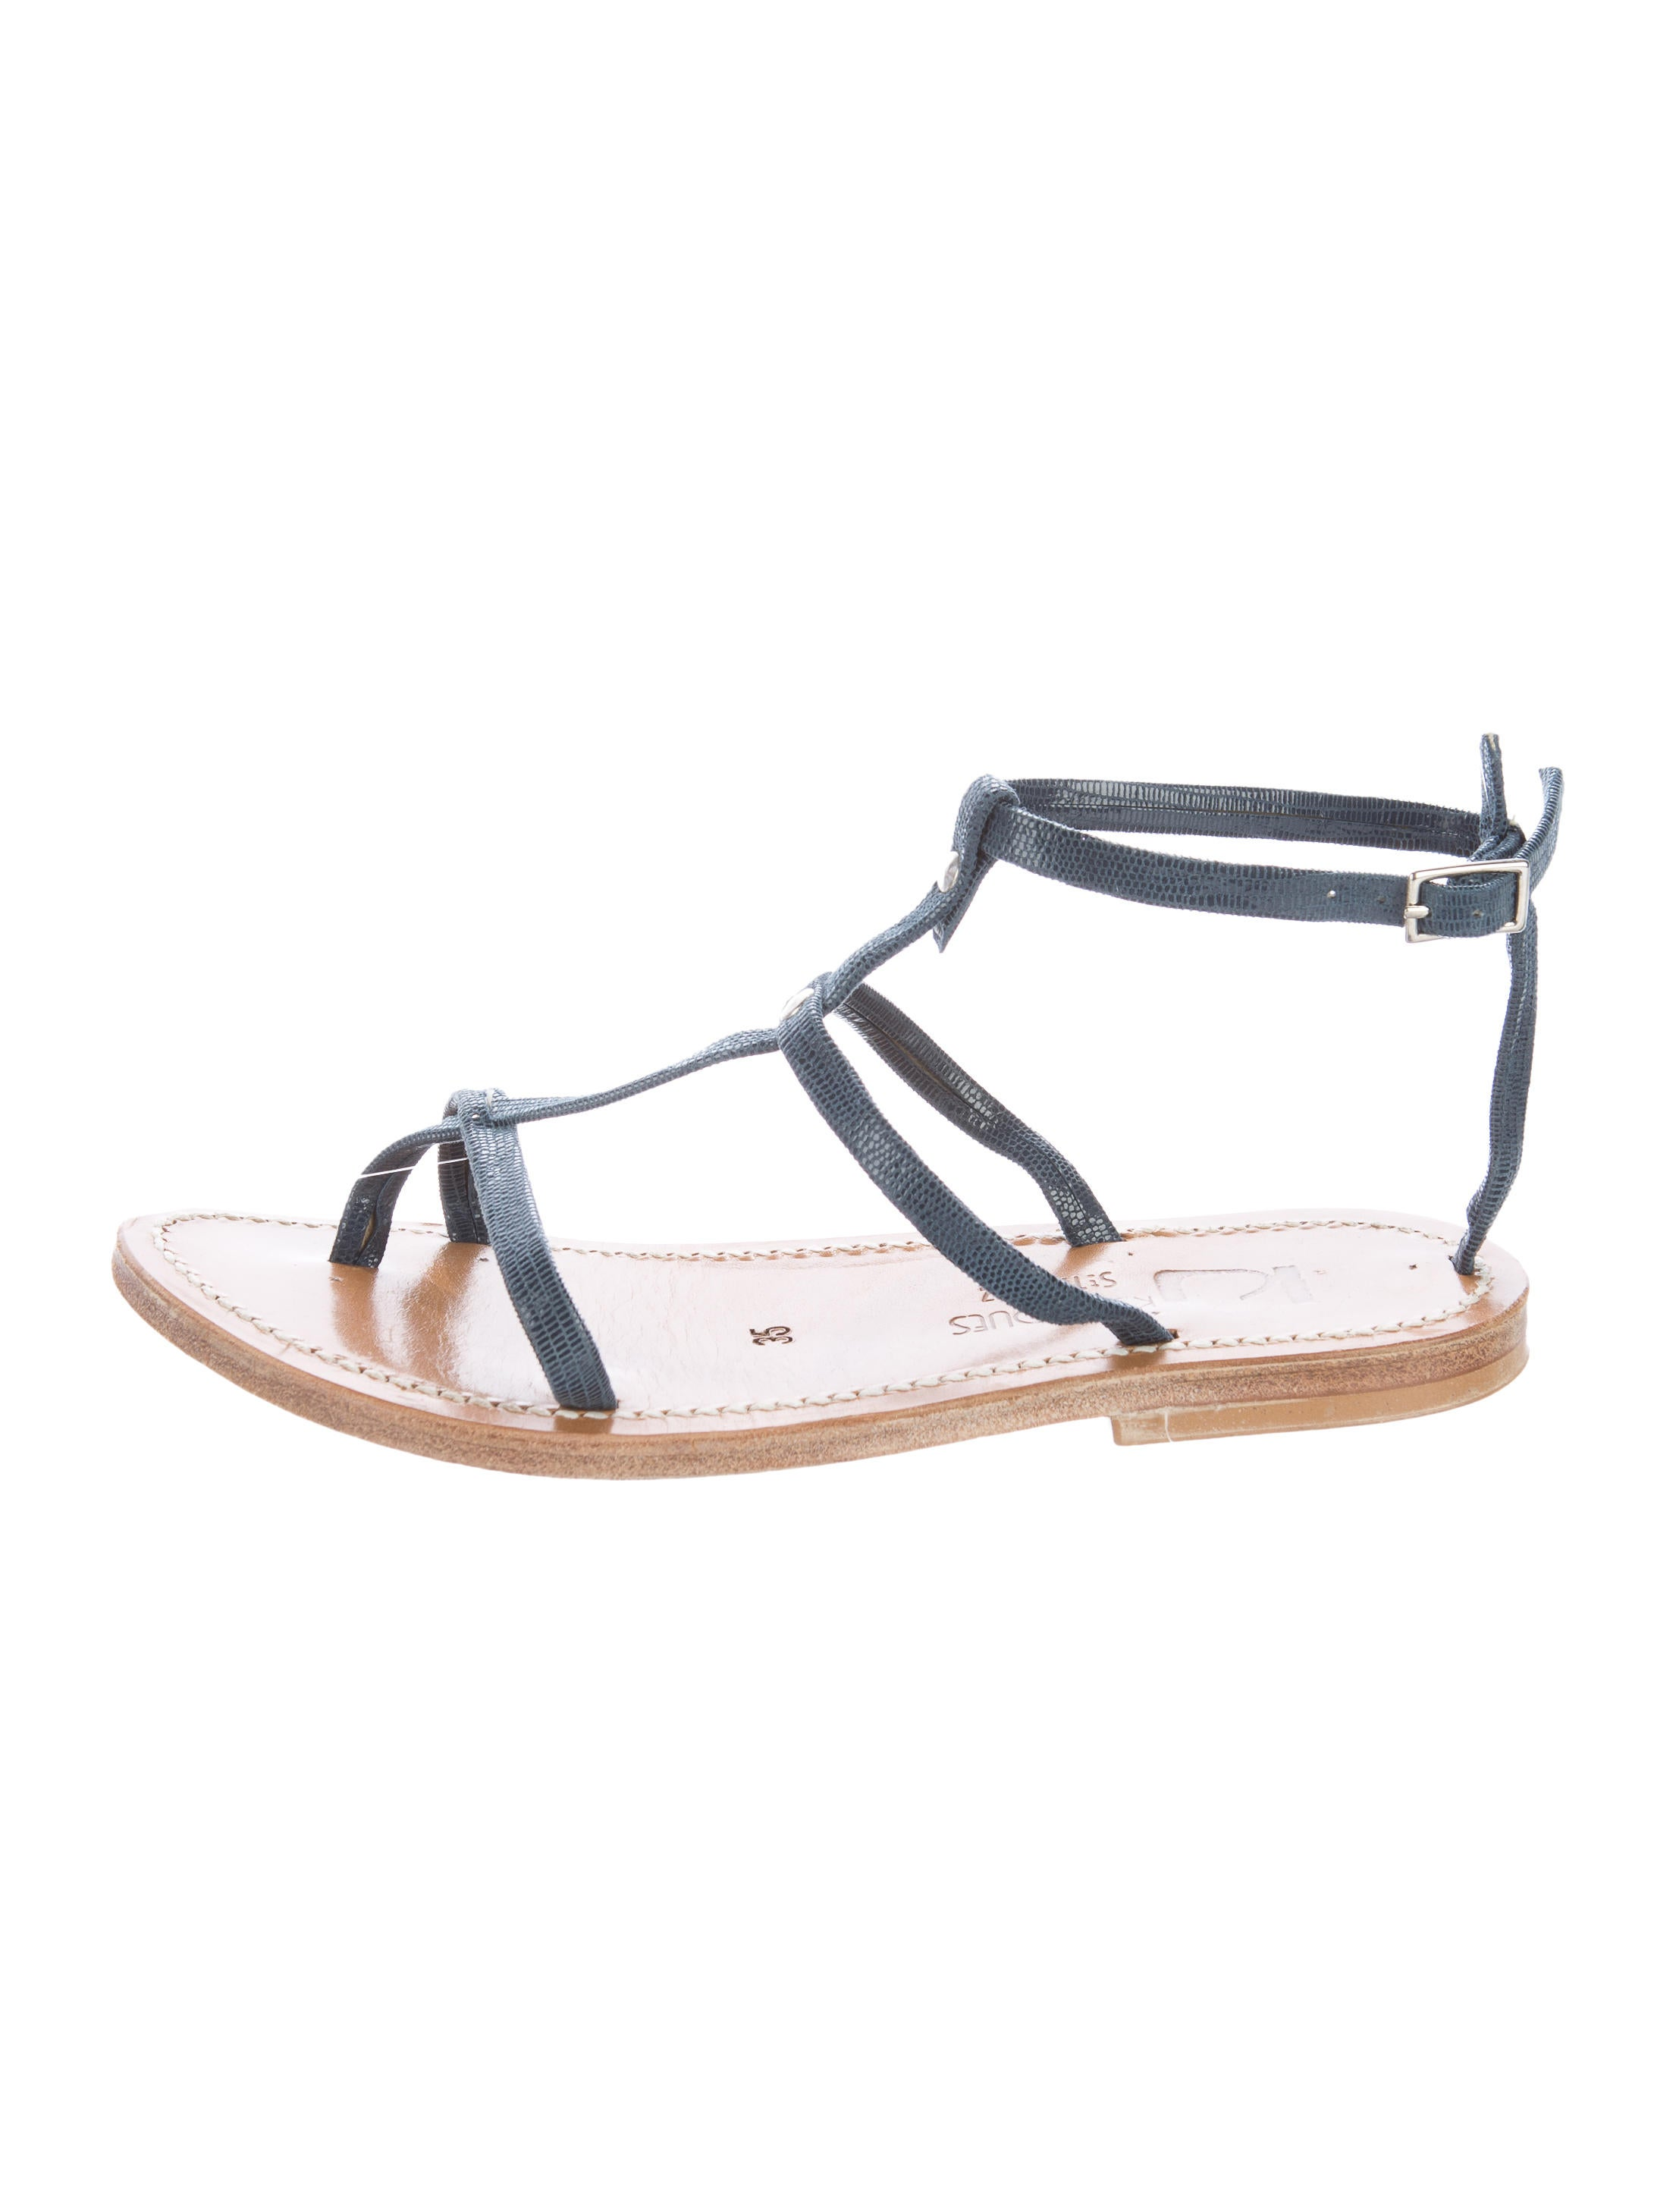 K Jacques St. Tropez Embossed T-Strap Sandals cheap 100% guaranteed new cheap price best sale cheap price loXn2